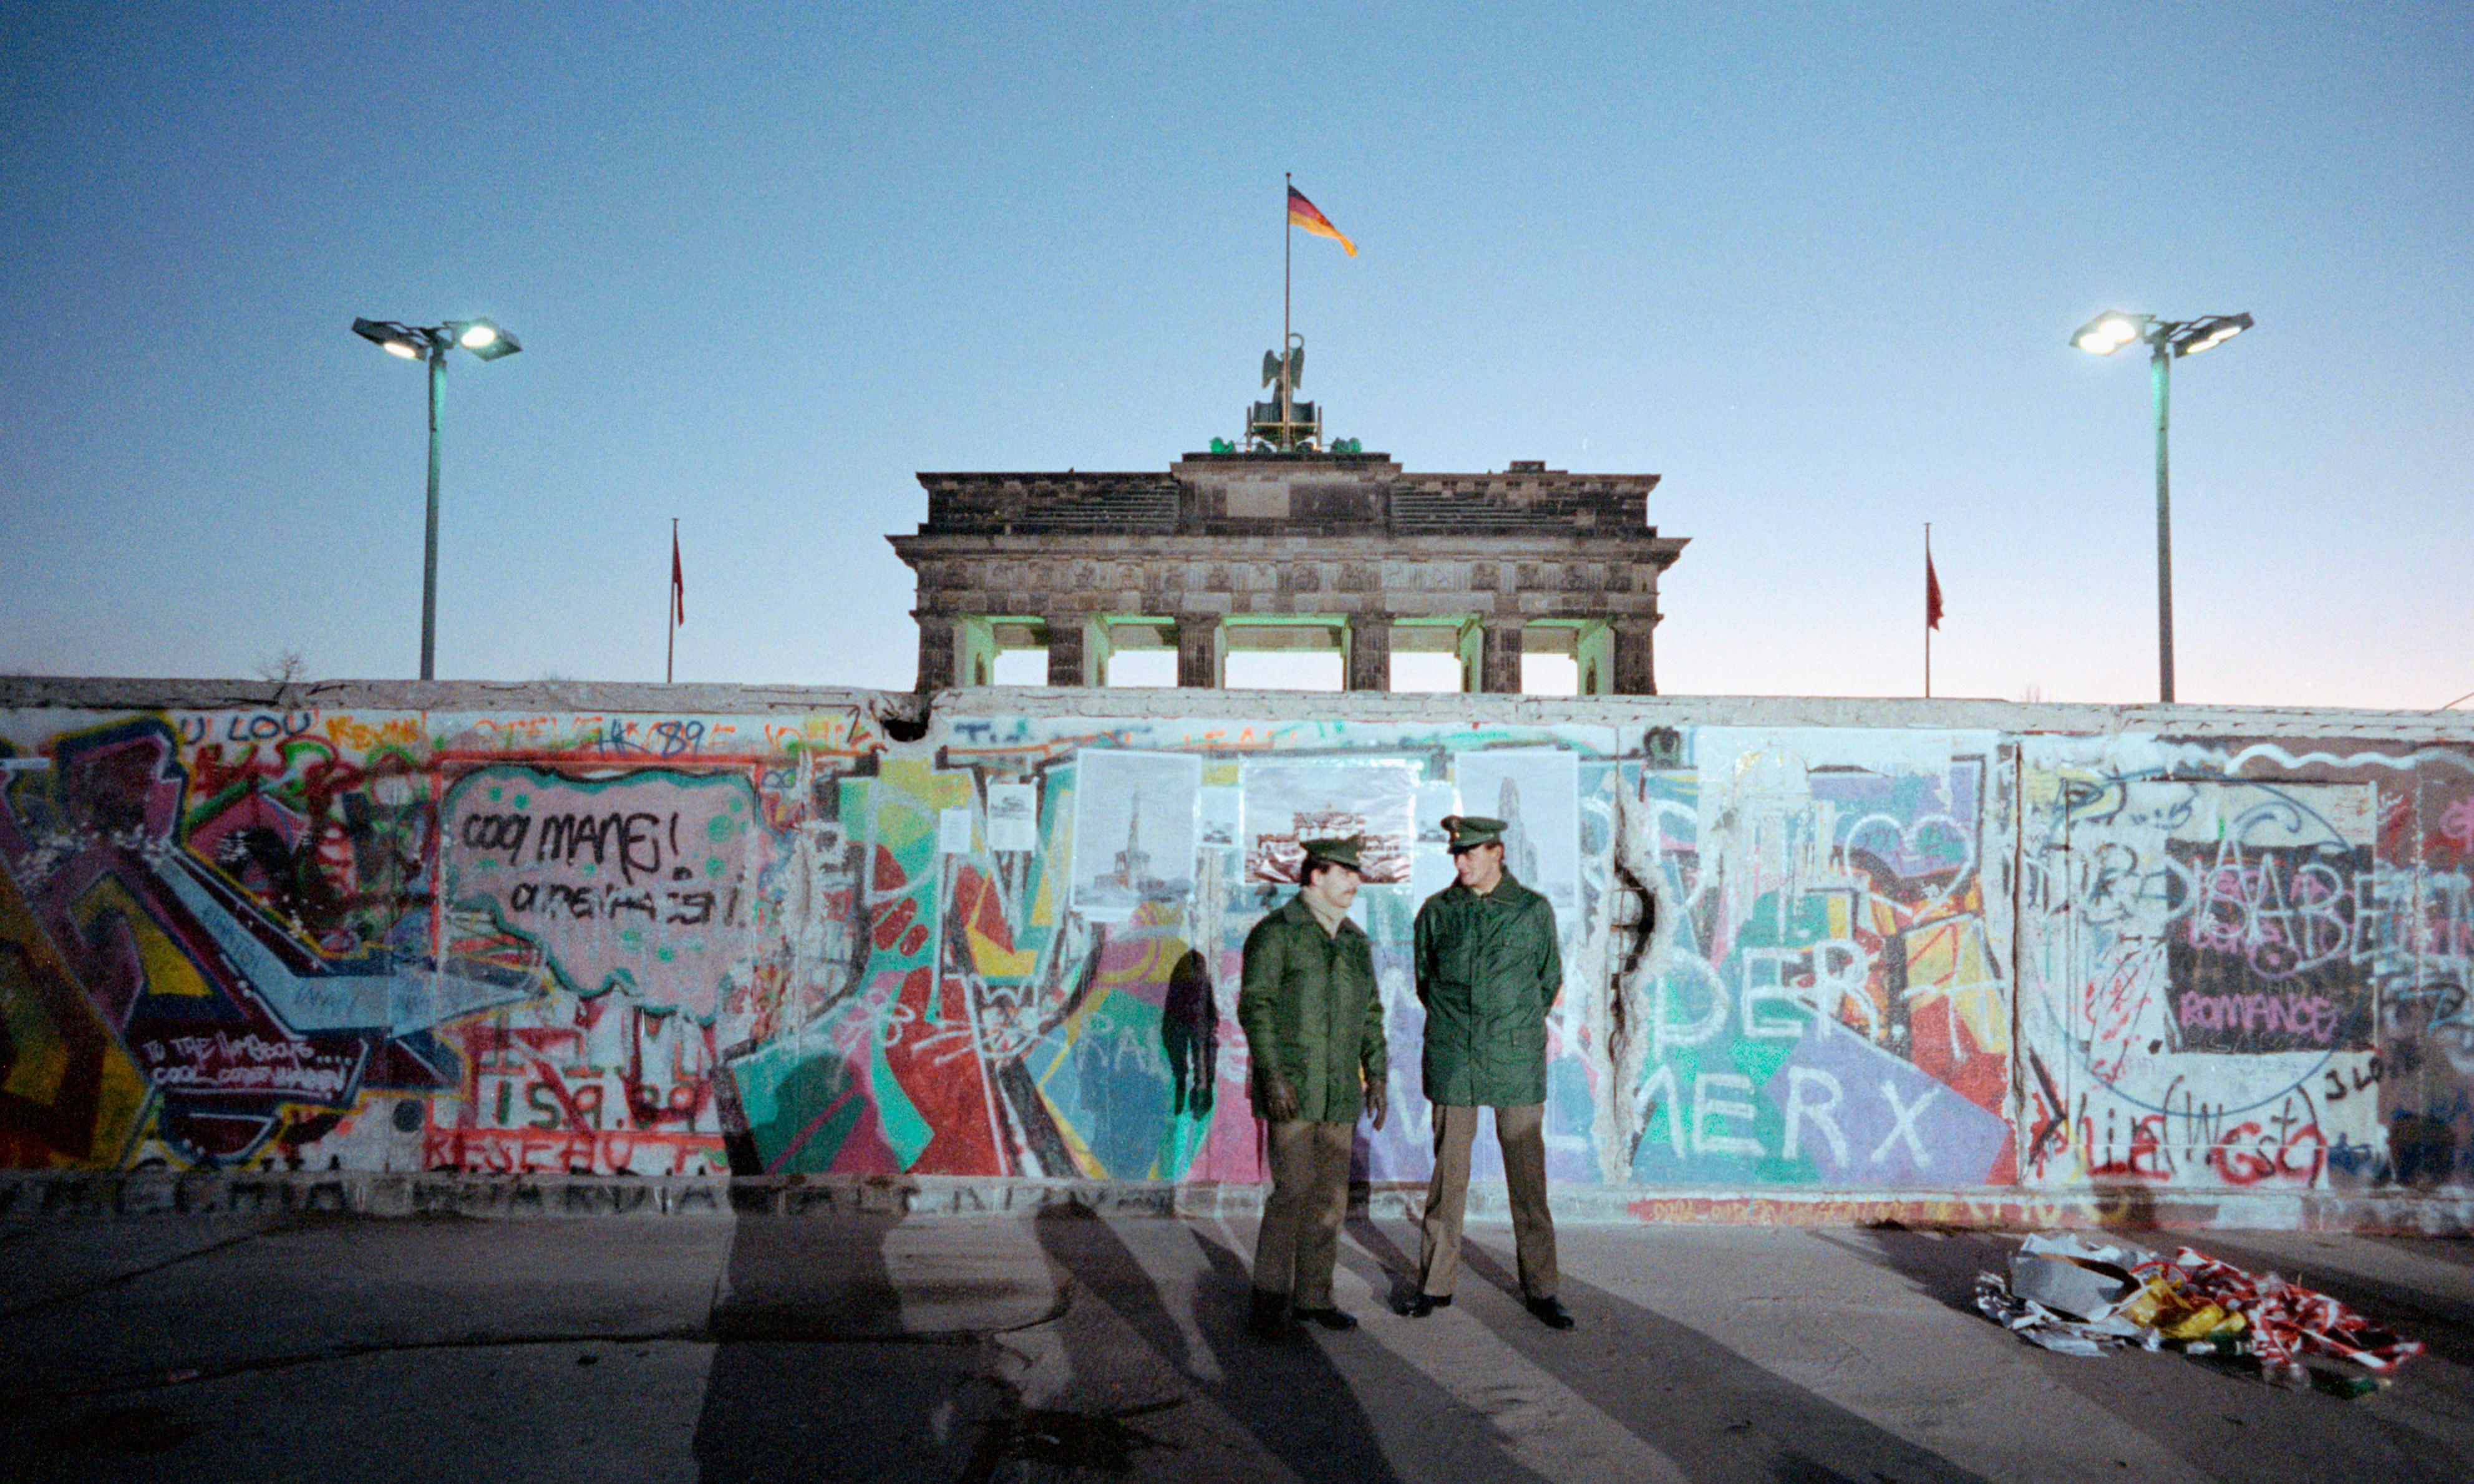 'I was sleeping when the Wall fell': Berlin stories, 30 years on